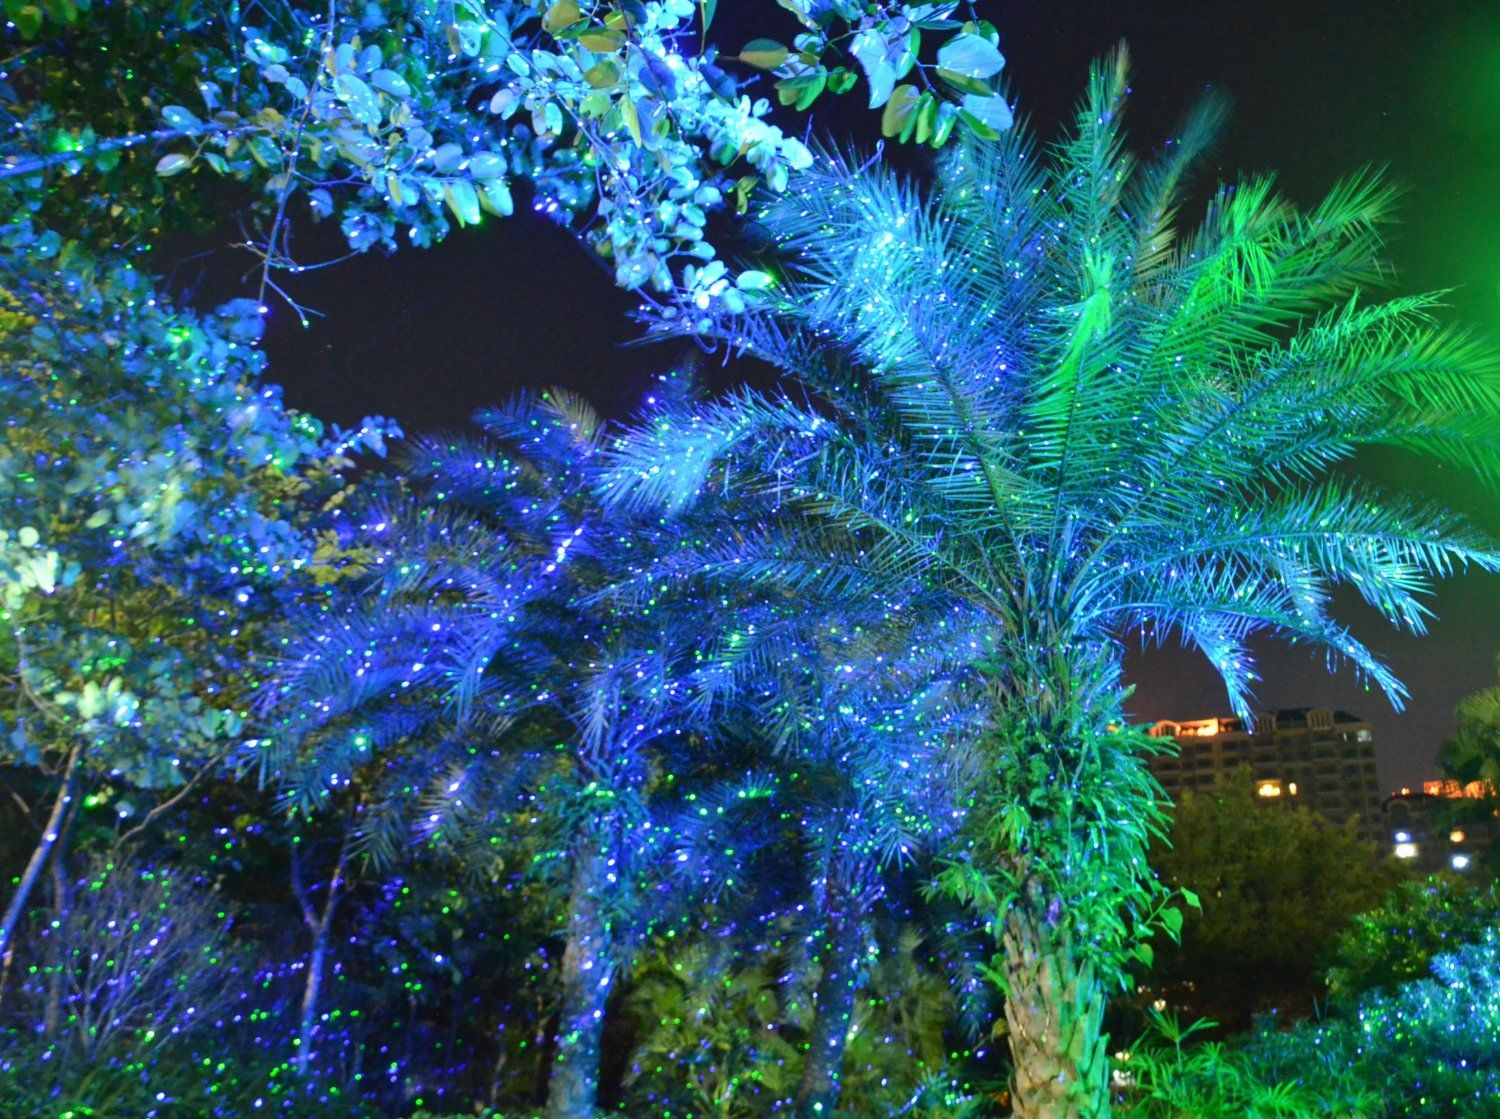 Garden Tree And Outdoor Wall Decoration Laser Lights For Holiday Lighting Outdoor Christmas Christmas Light Projector Laser Christmas Lights